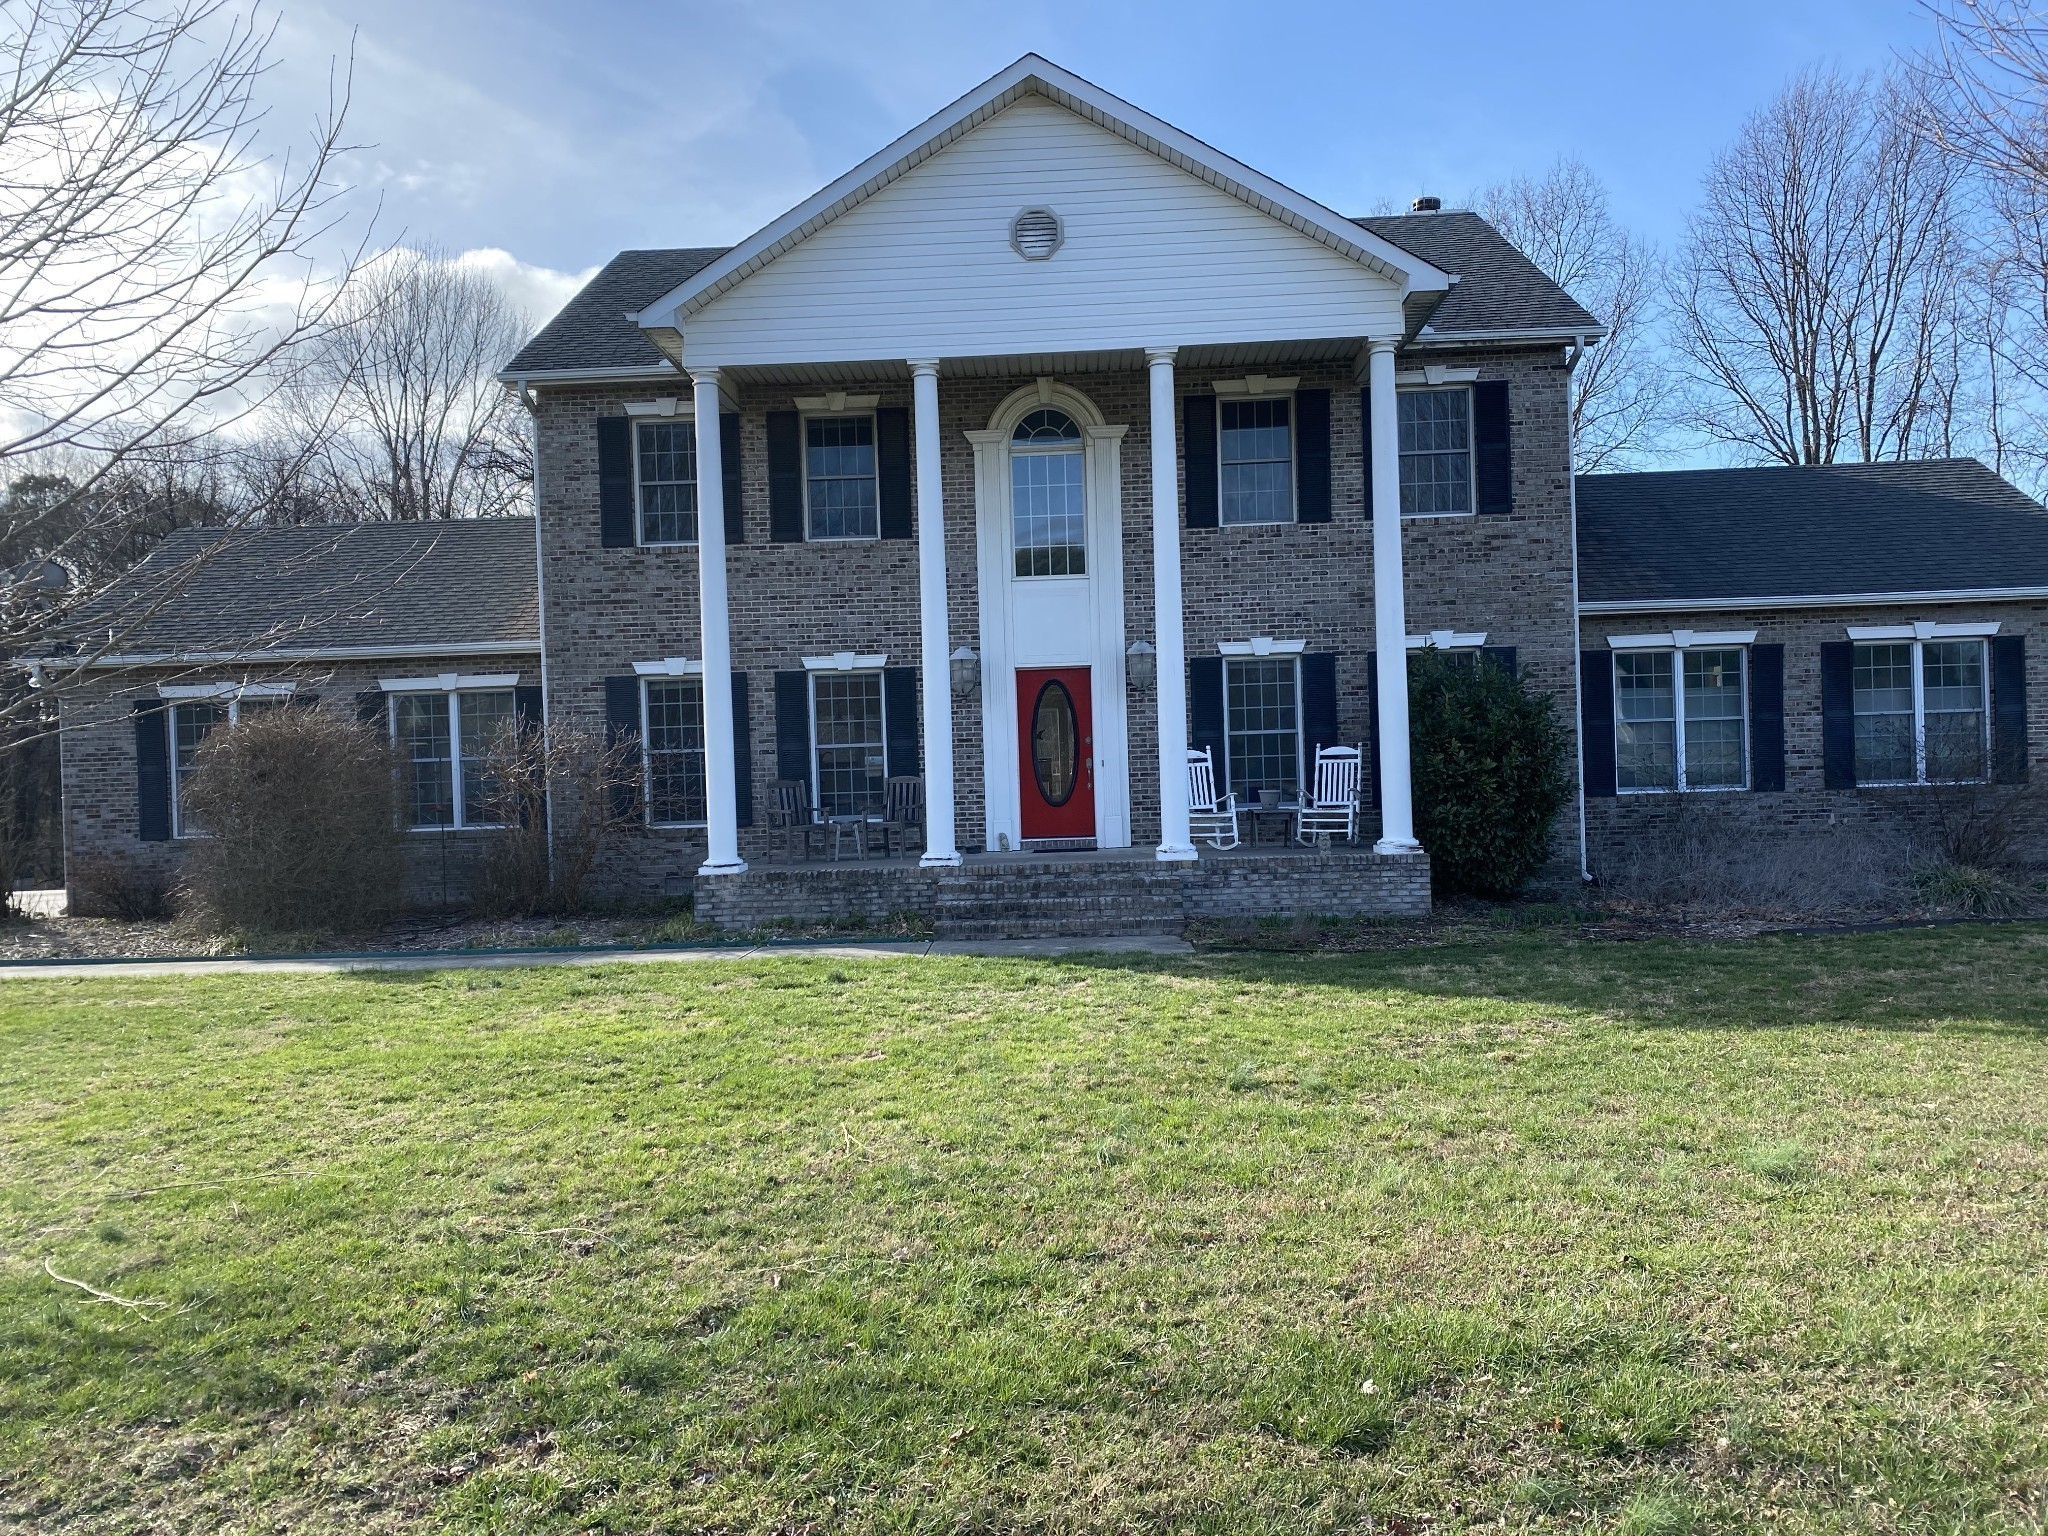 36 Wiggins Creek Dr, Sewanee, TN 37375 - Sewanee, TN real estate listing